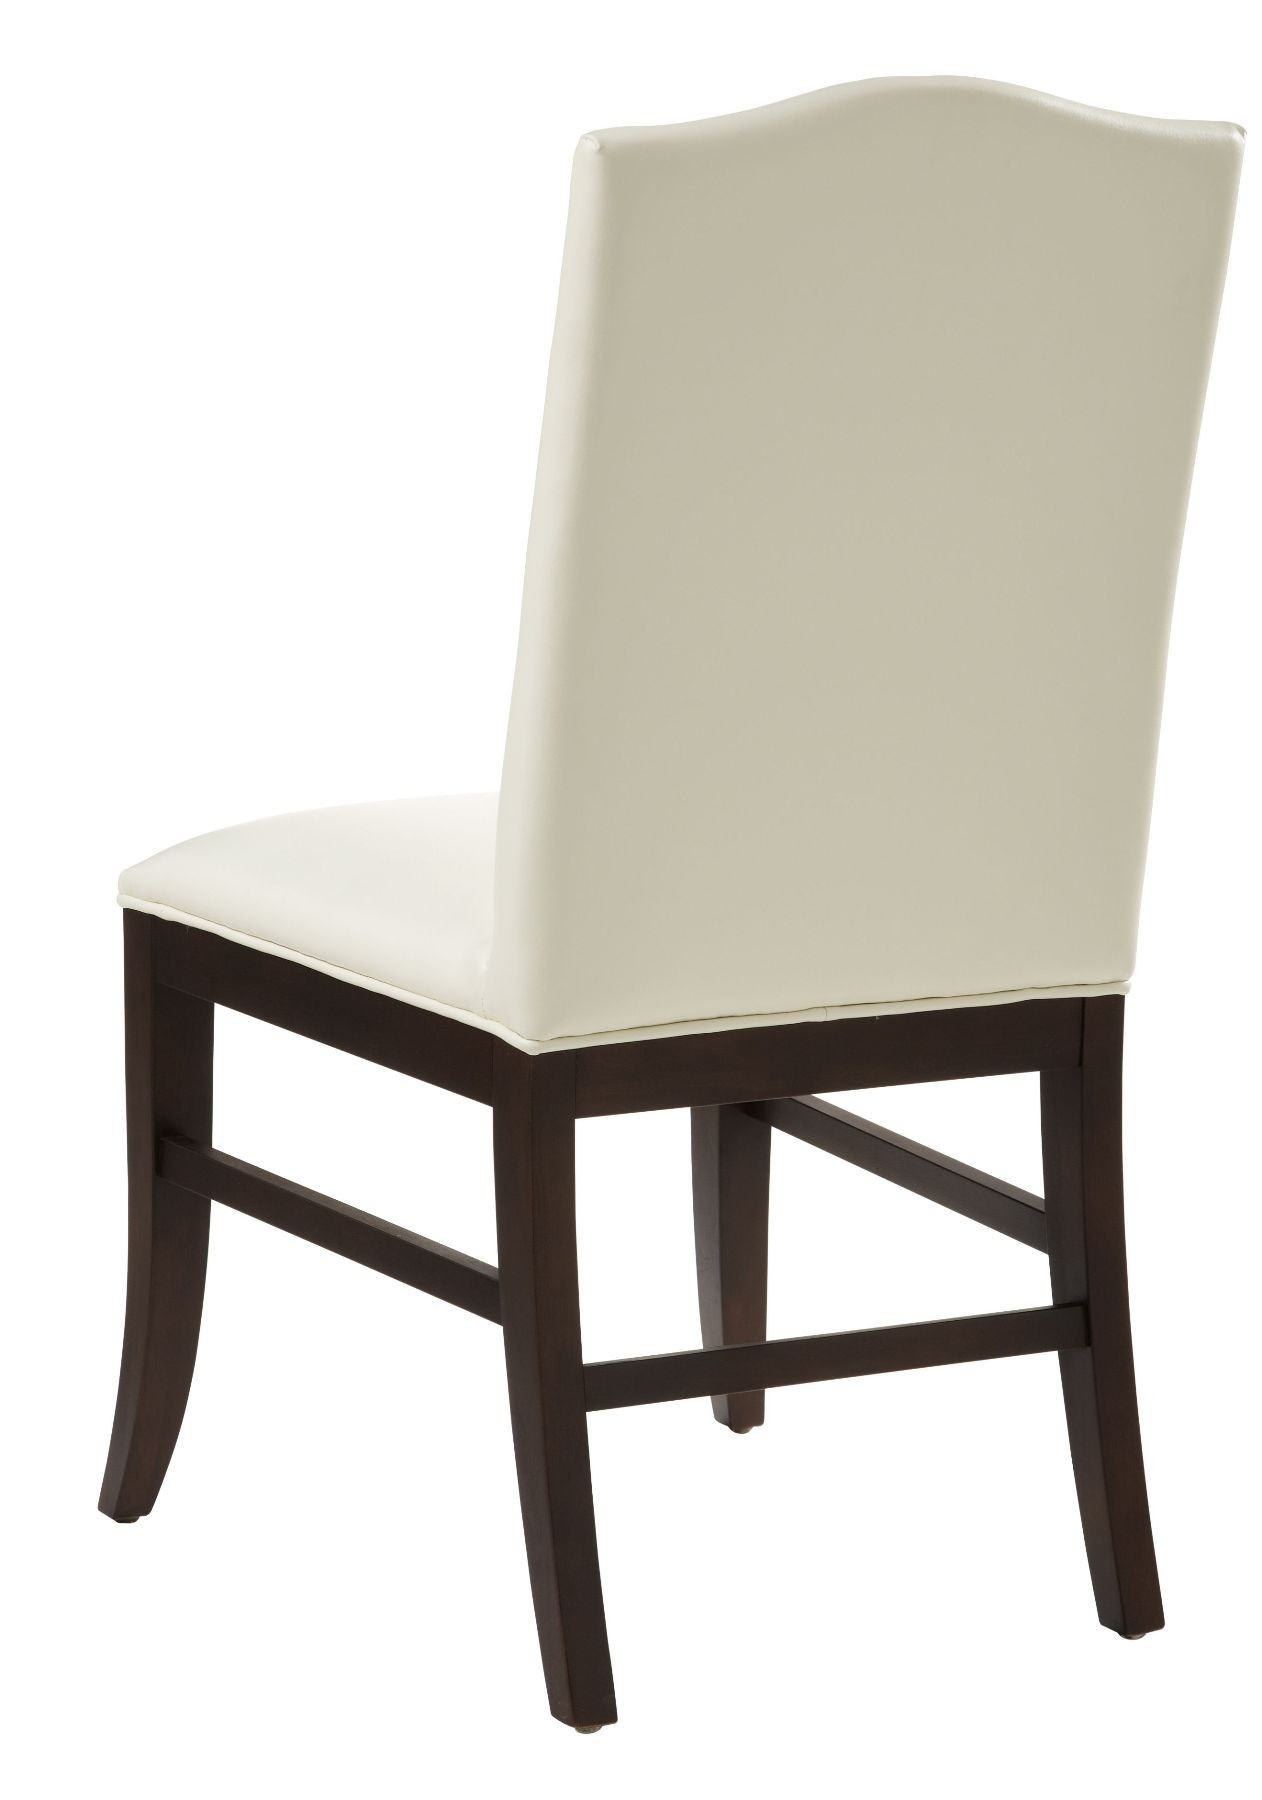 Ivory Dining Chairs Maison Ivory Leather Dining Chair Set Of 2 From Sunpan